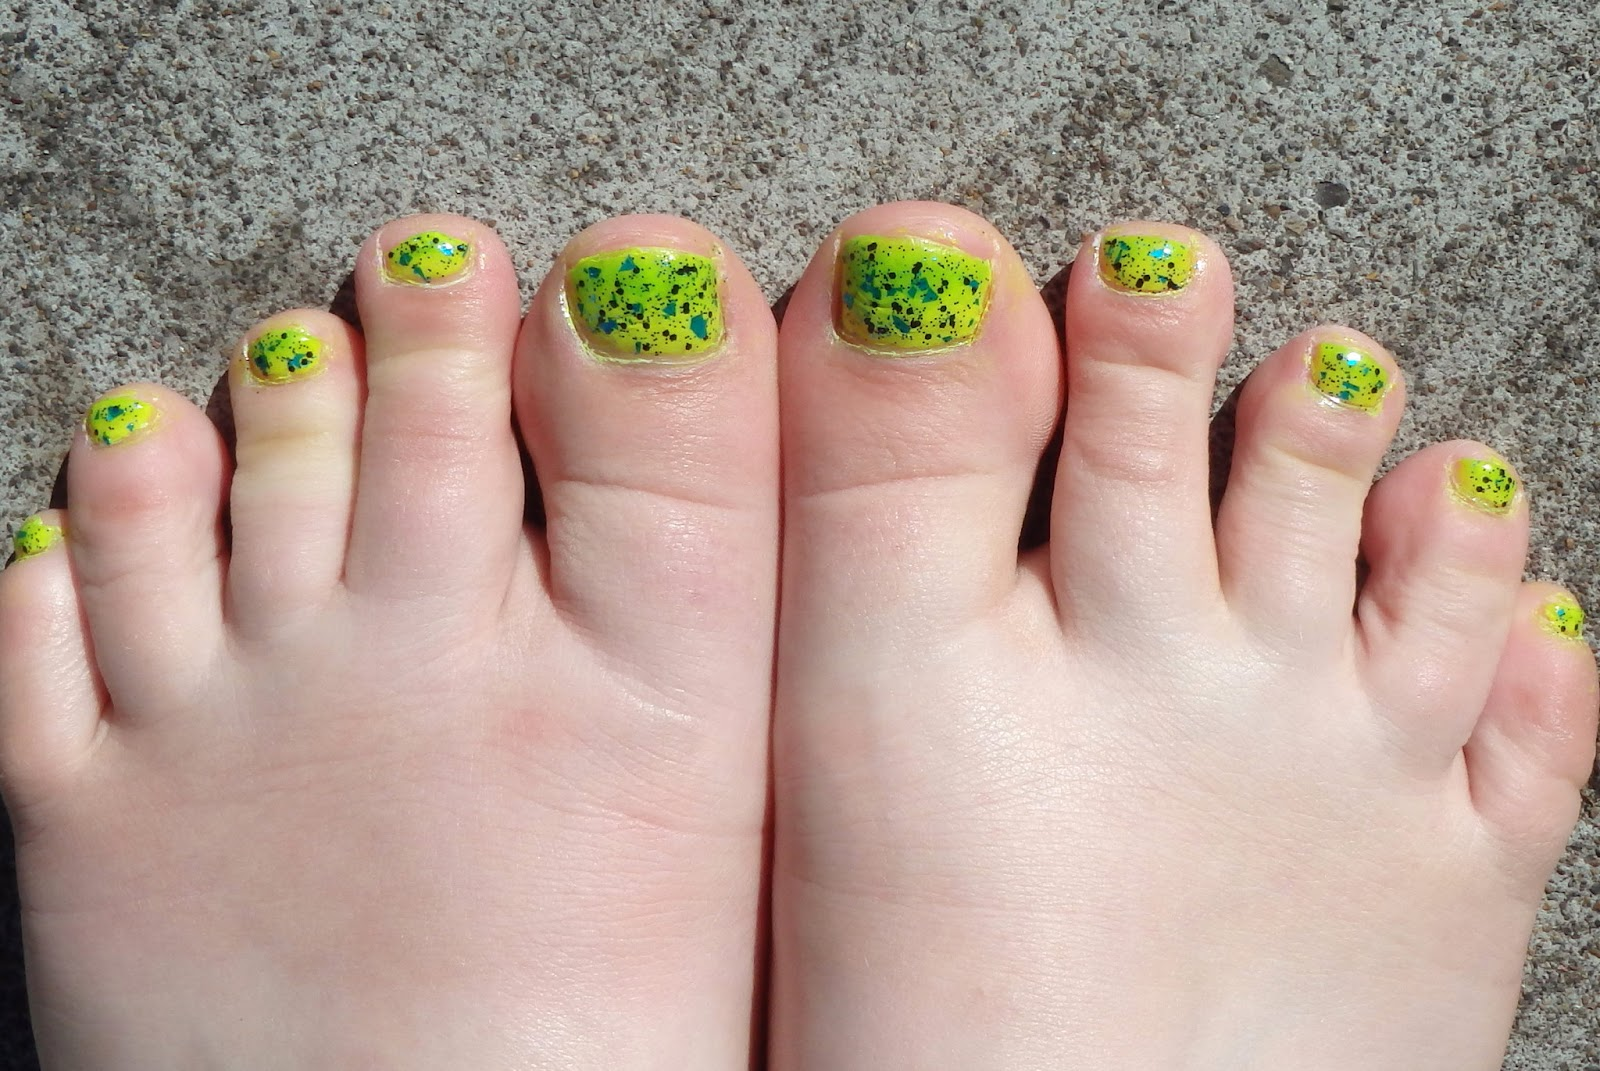 Kelly lime green toes footjob